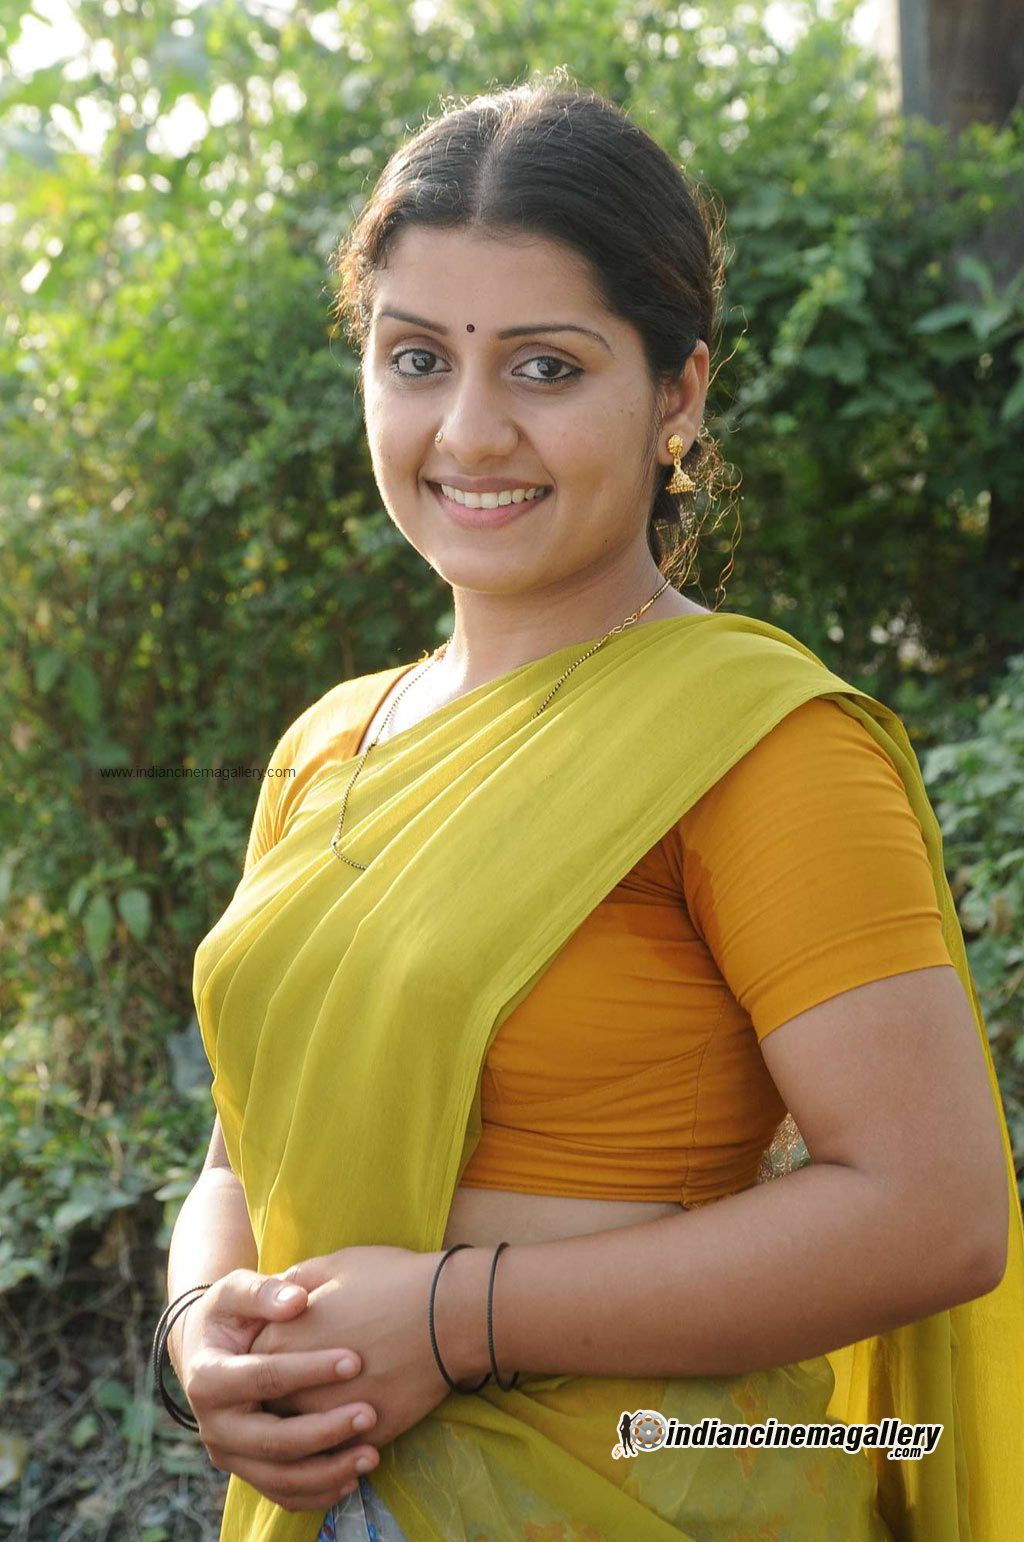 Mallu Malayalam actress Sarayu hot show in saree from tamil movie